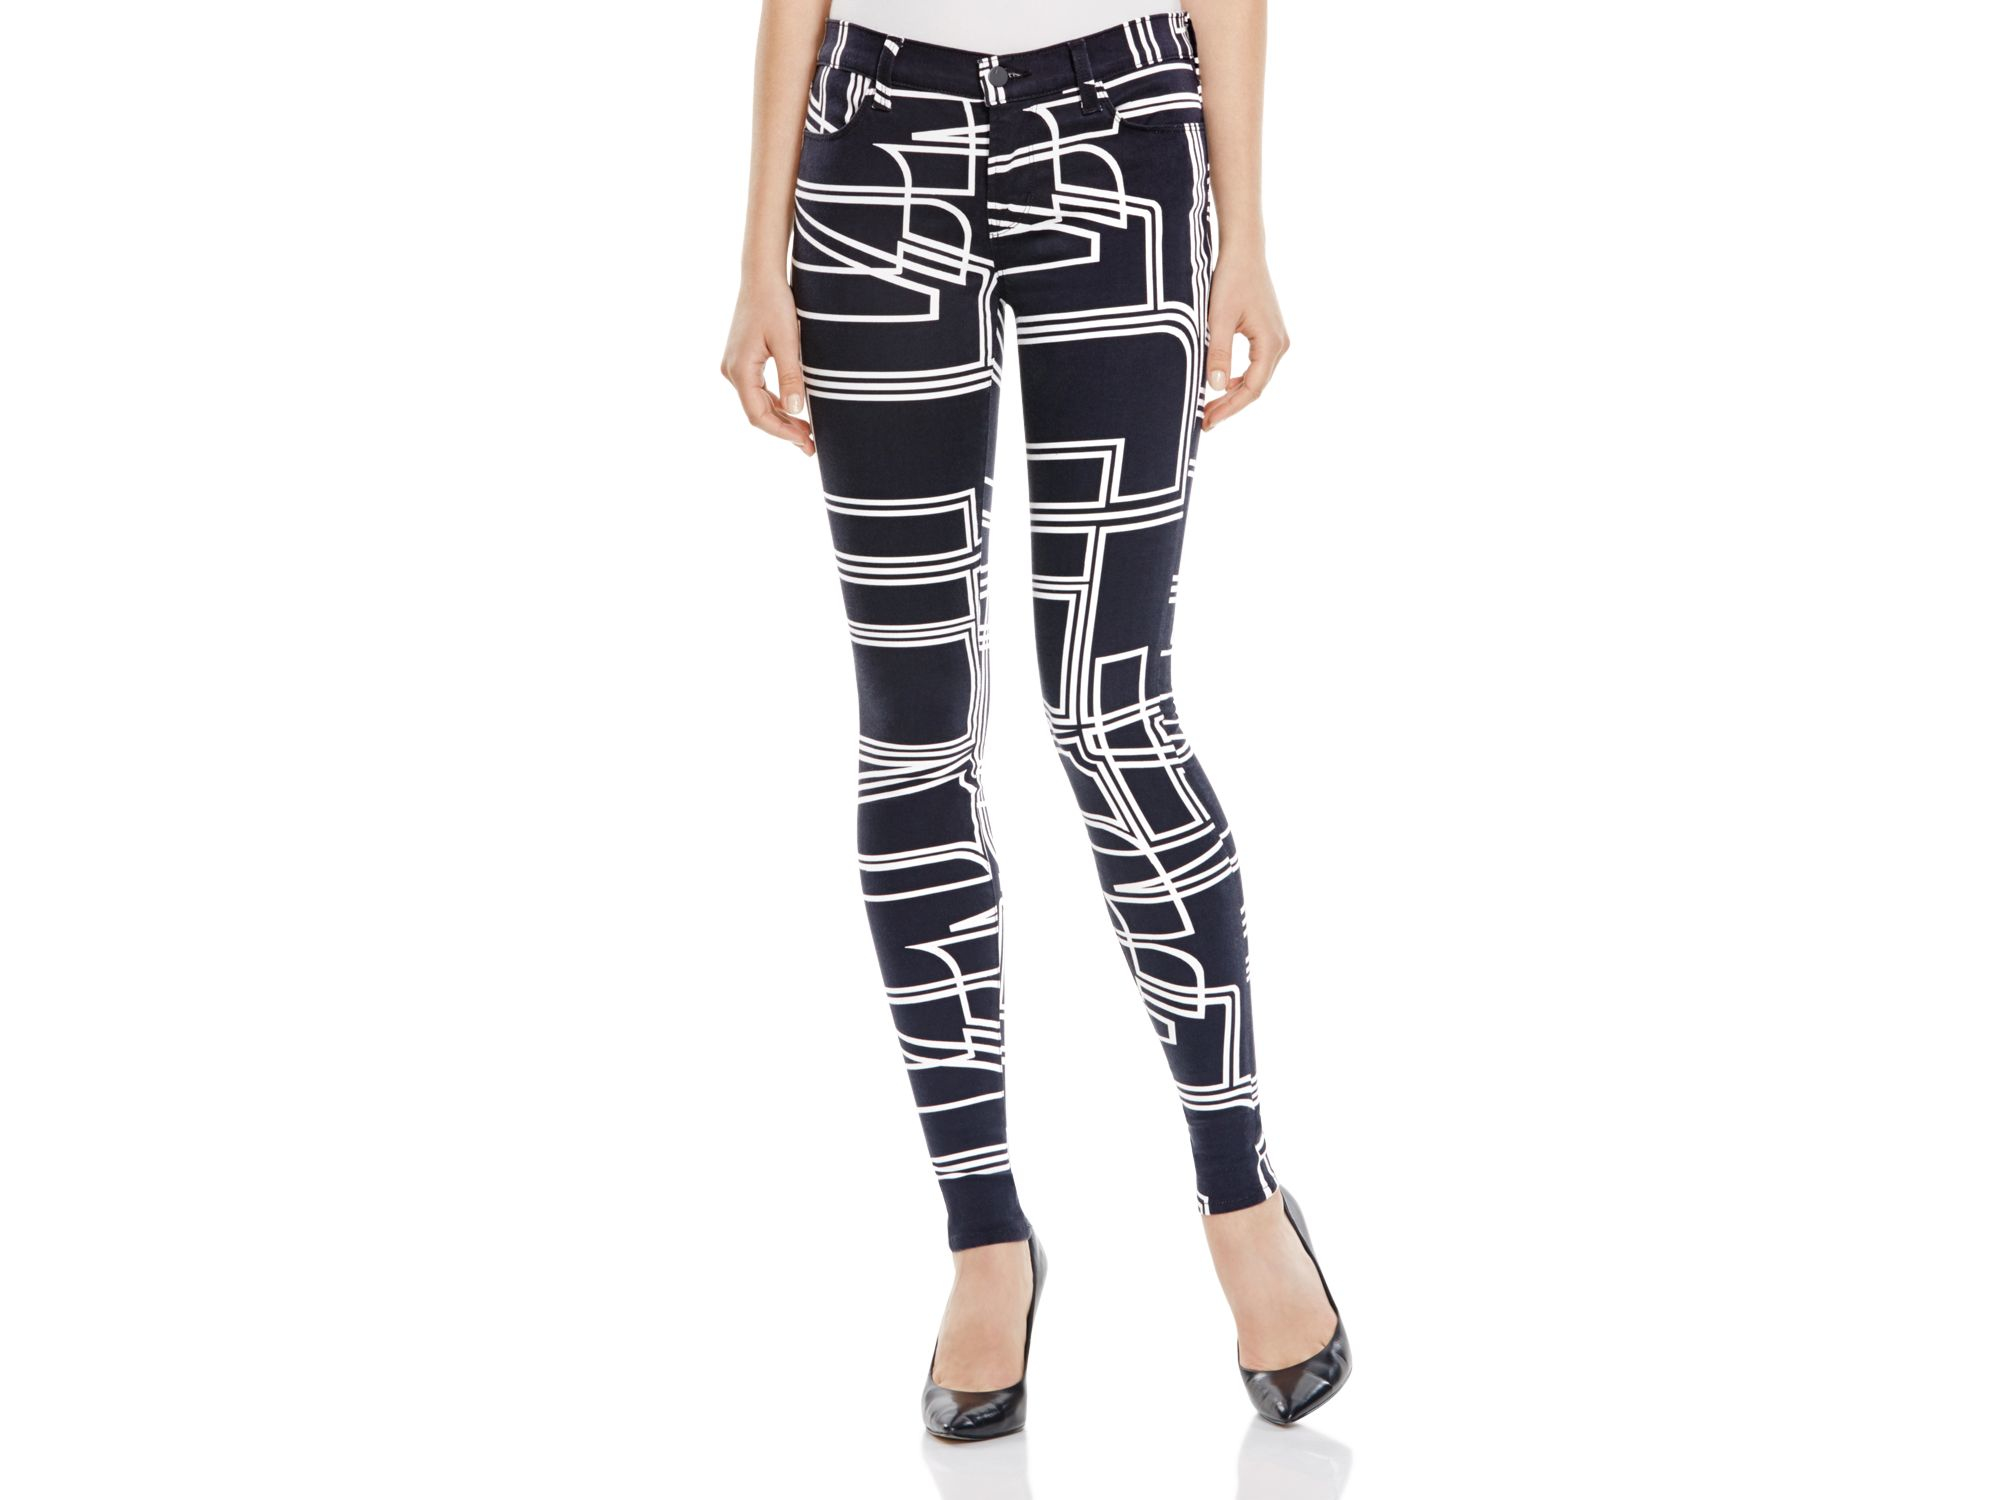 Black and white printed skinny jeans